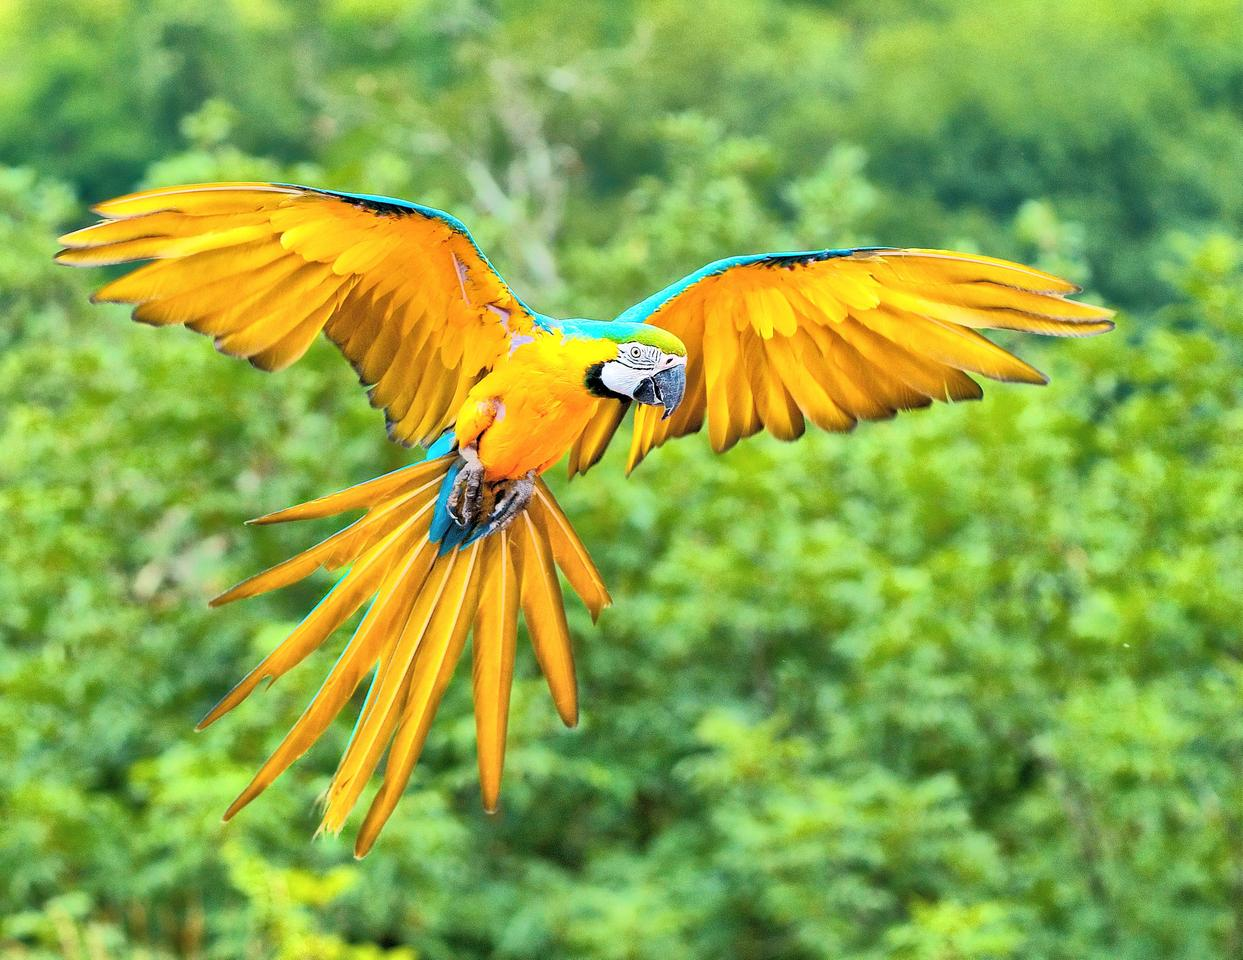 The bright colors of the Blue and Gold Macaw are caused by submicron surface structures (Photo: Luc Viatour)